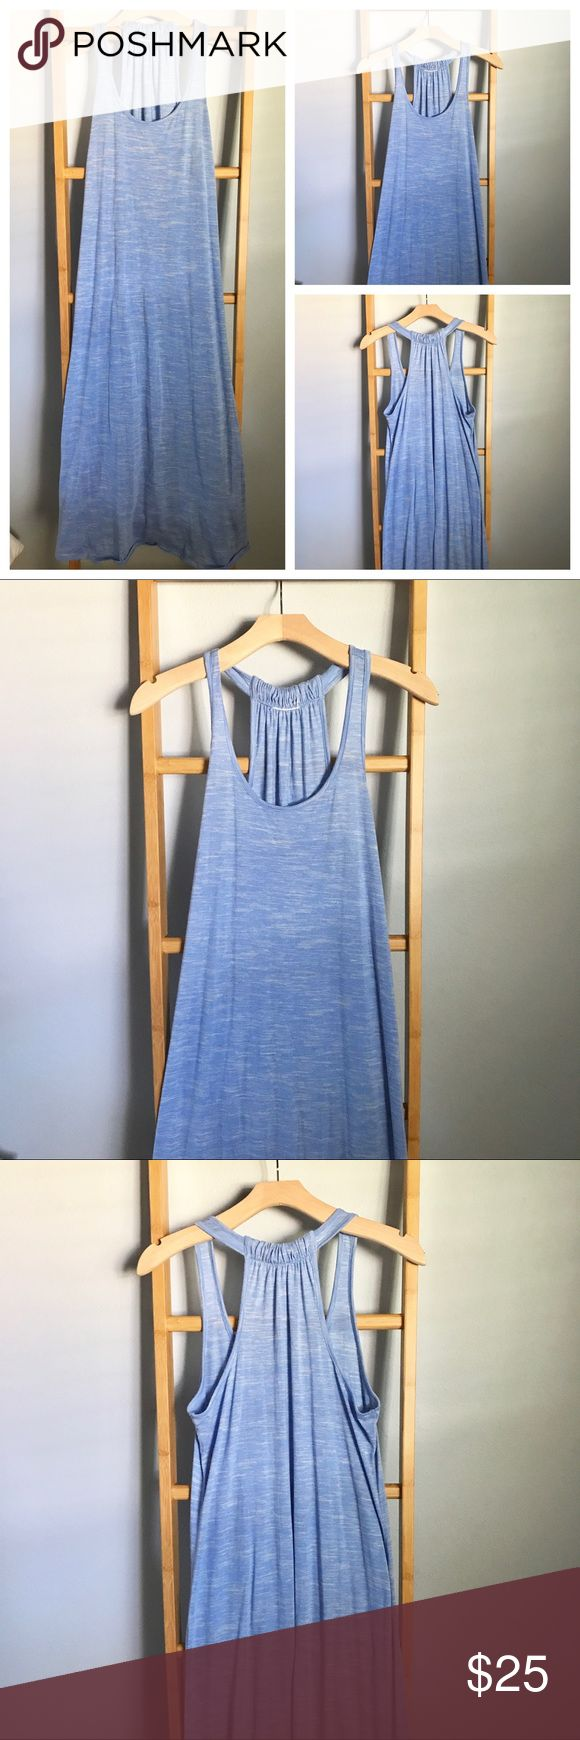 ‼️SALE‼️Light blue MAXI dress Great for SUMMER!!☀️ Love this maxi and is perfect for your next vacation. Great with sandals and a fab hat or wear as a coverup over your bikini👙 Light blue. No size tag but fits M/L. #'s: vacation, tropical, getaway, comfy, soft, ocean, lake, holiday. Dresses Maxi